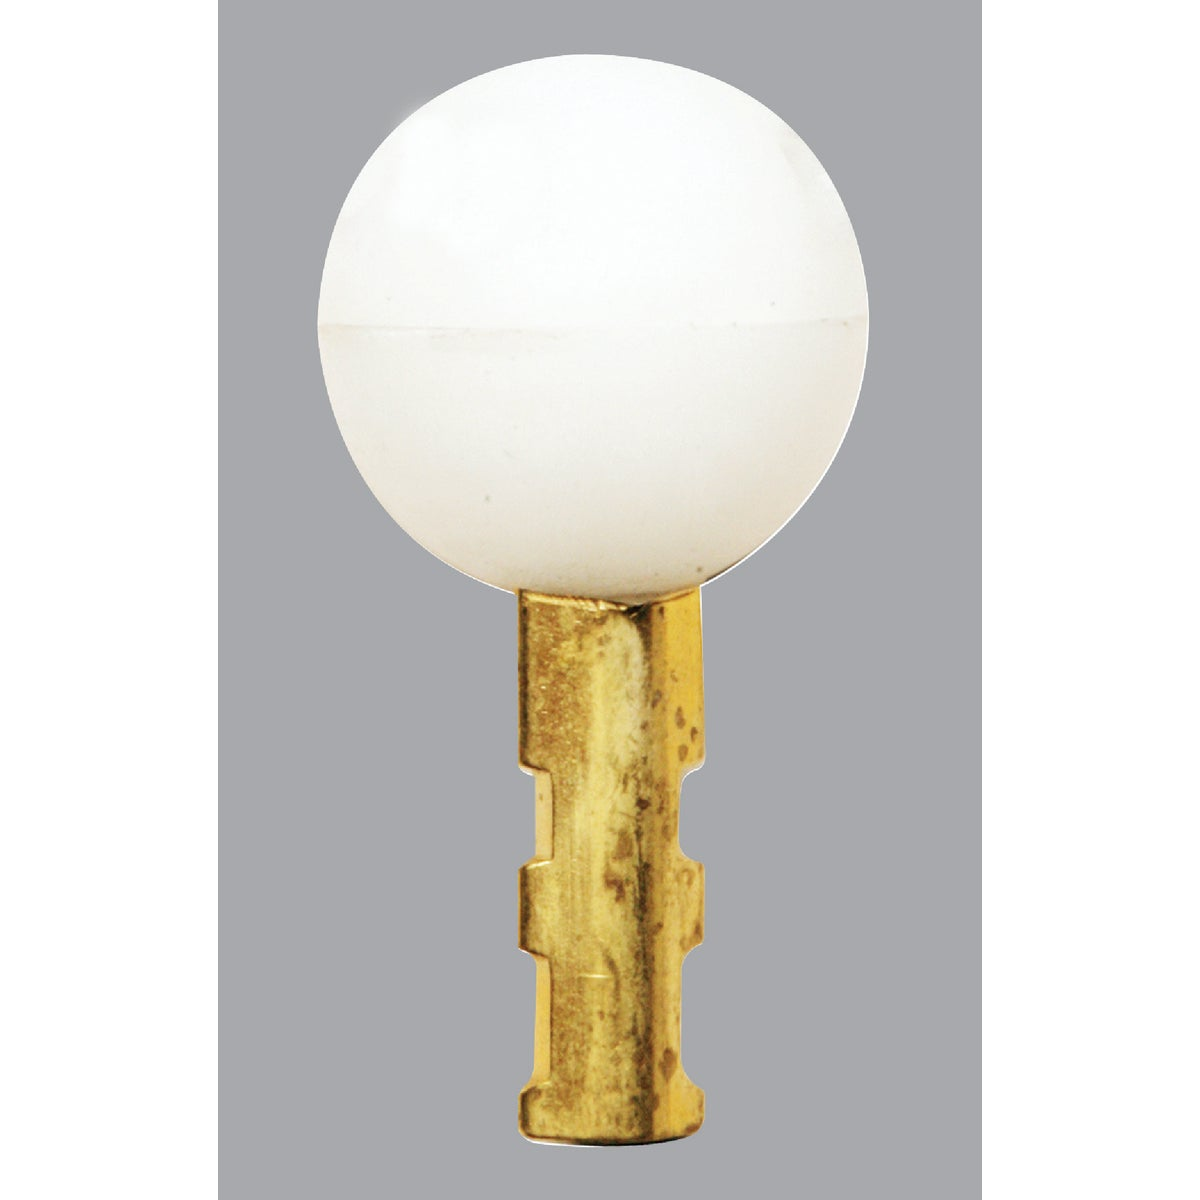 DIAL STYLE FAUCET BALL - 405345 by Plumb Pak/keeney Mfg